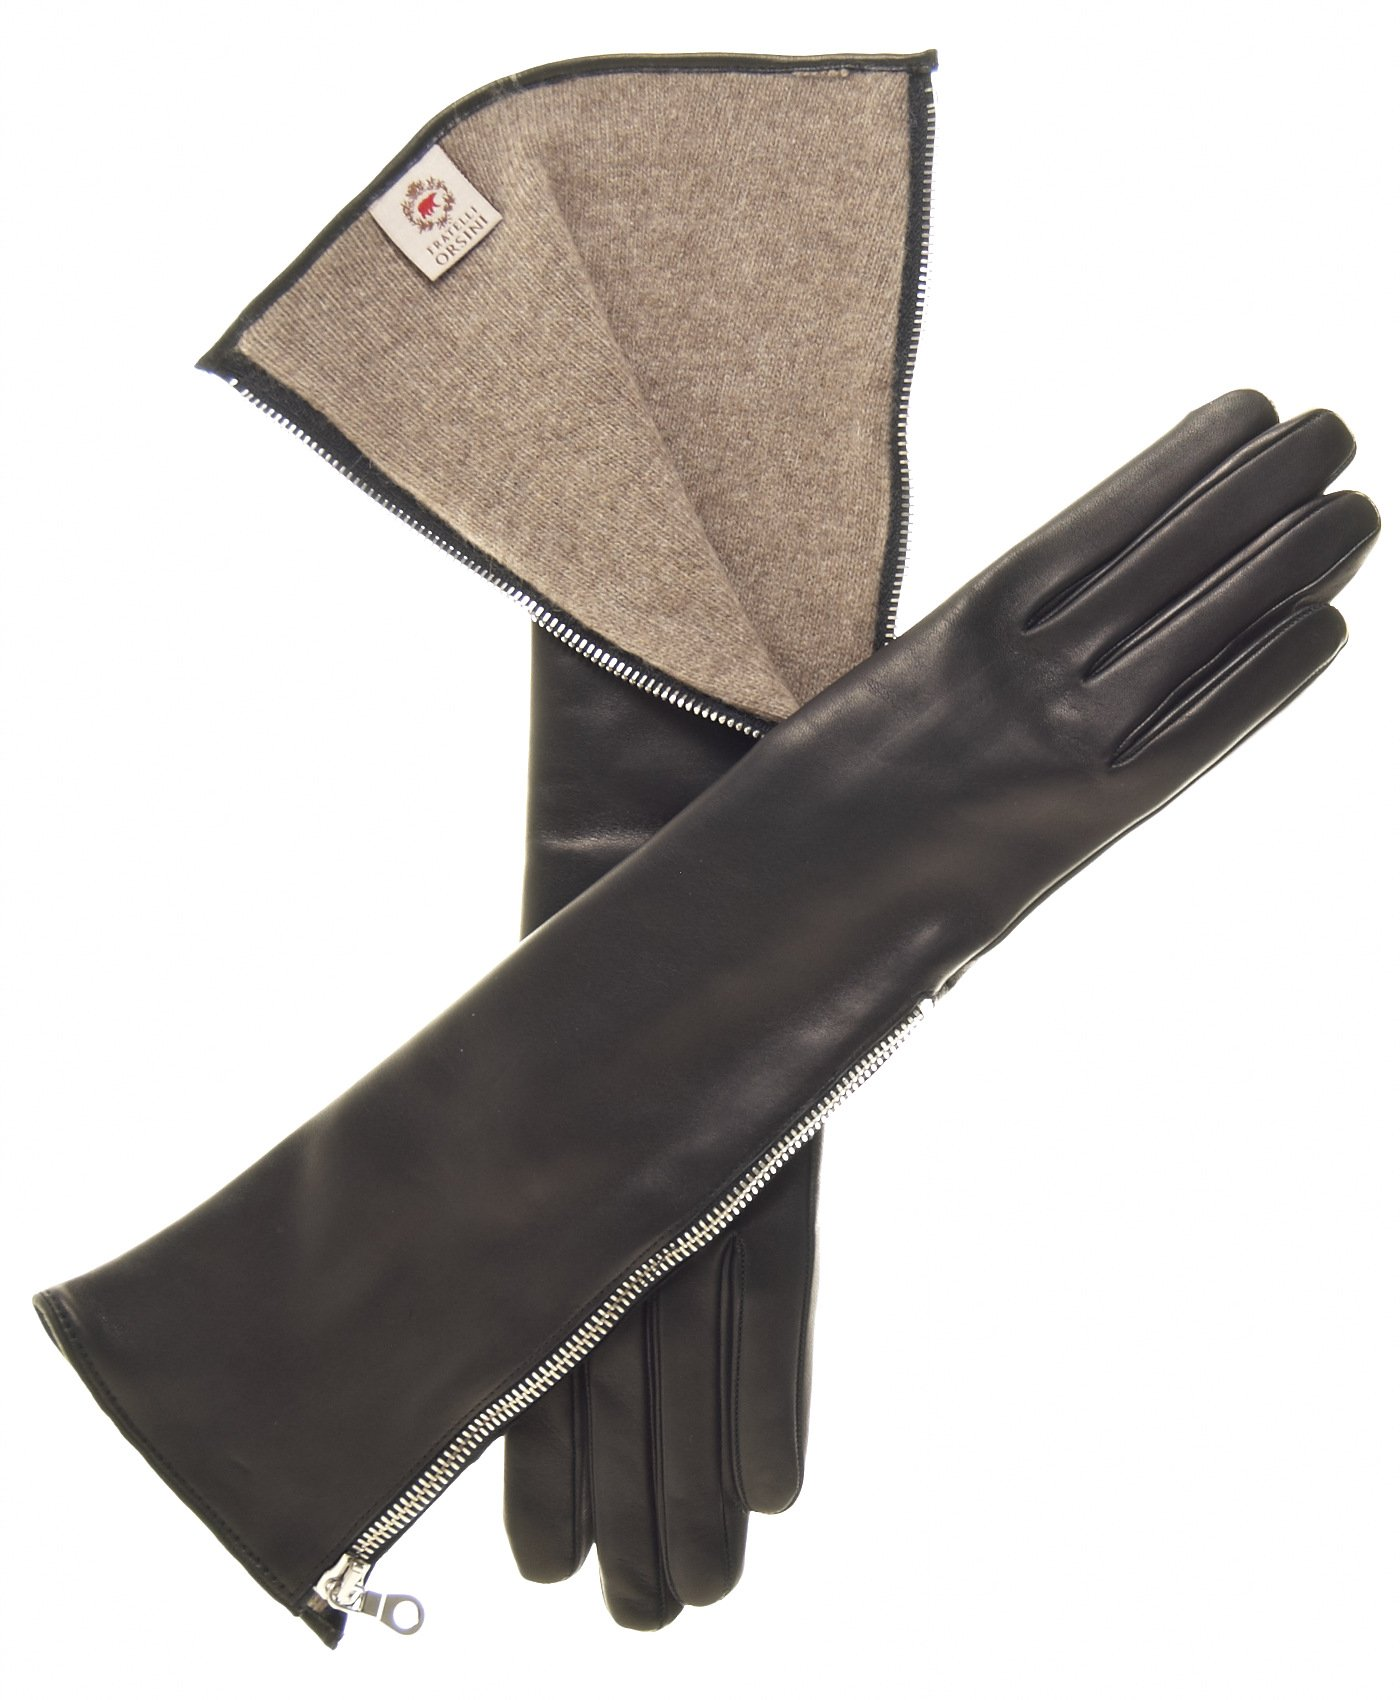 Fratelli Orsini Women's Elbow Length Cashmere Lined Gloves with Zipper Size 8 Color Black